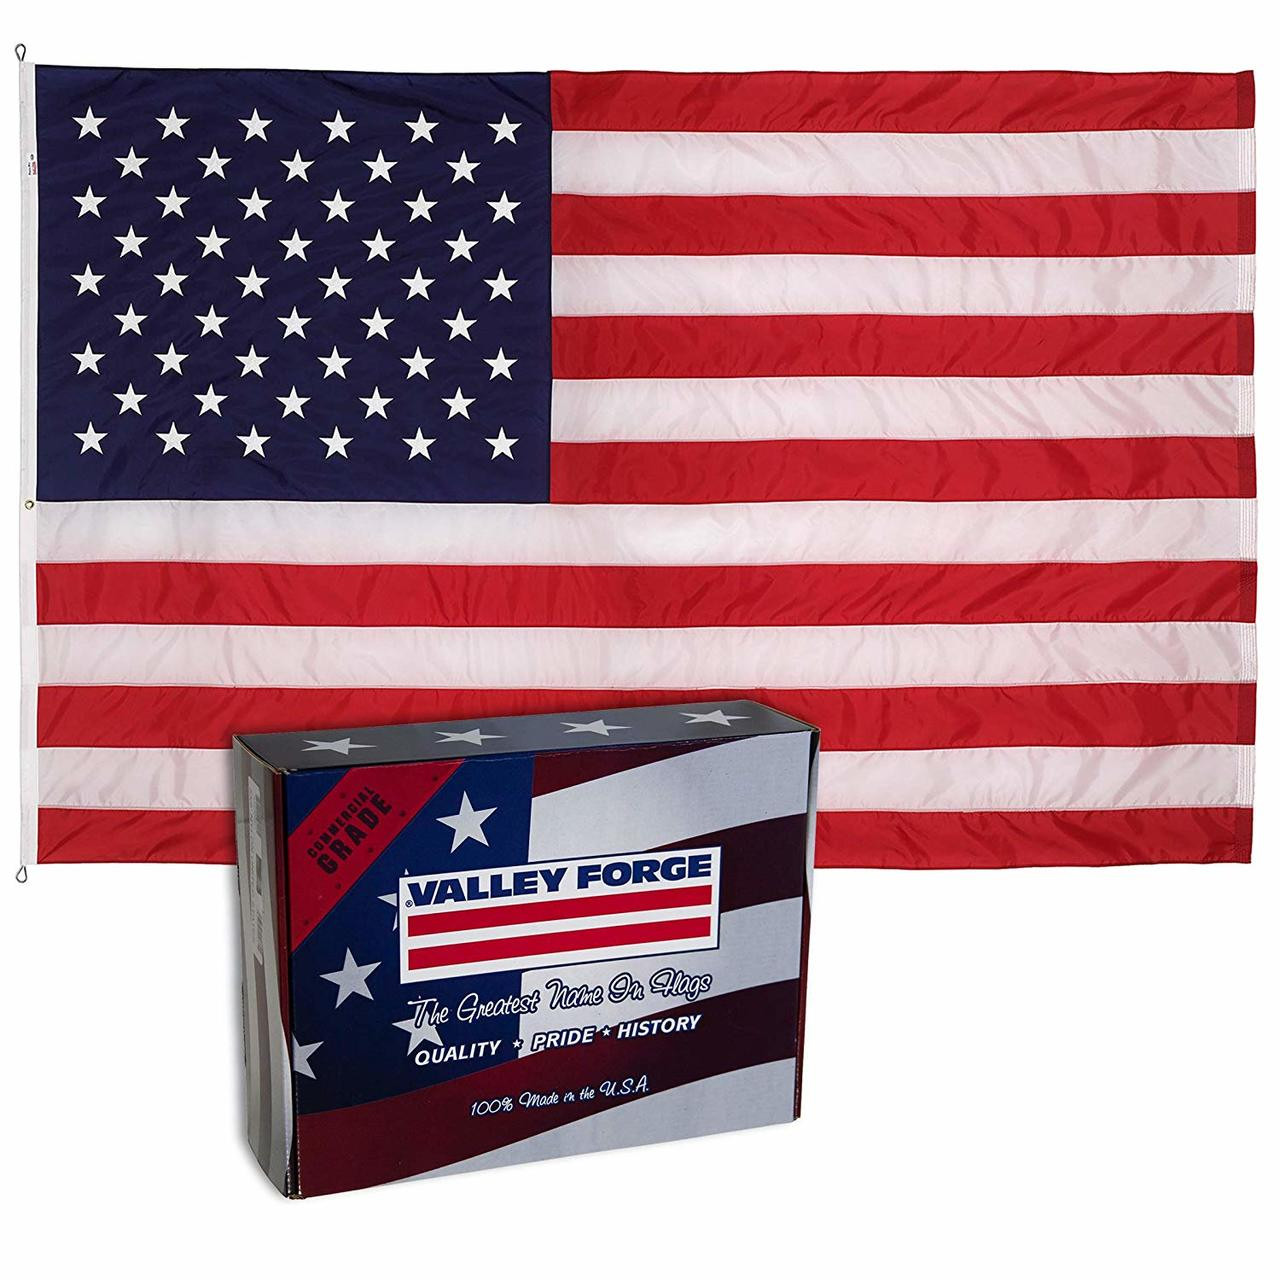 c6470616 Valley Forge Perma-Nylon U.S.A. Flag with box